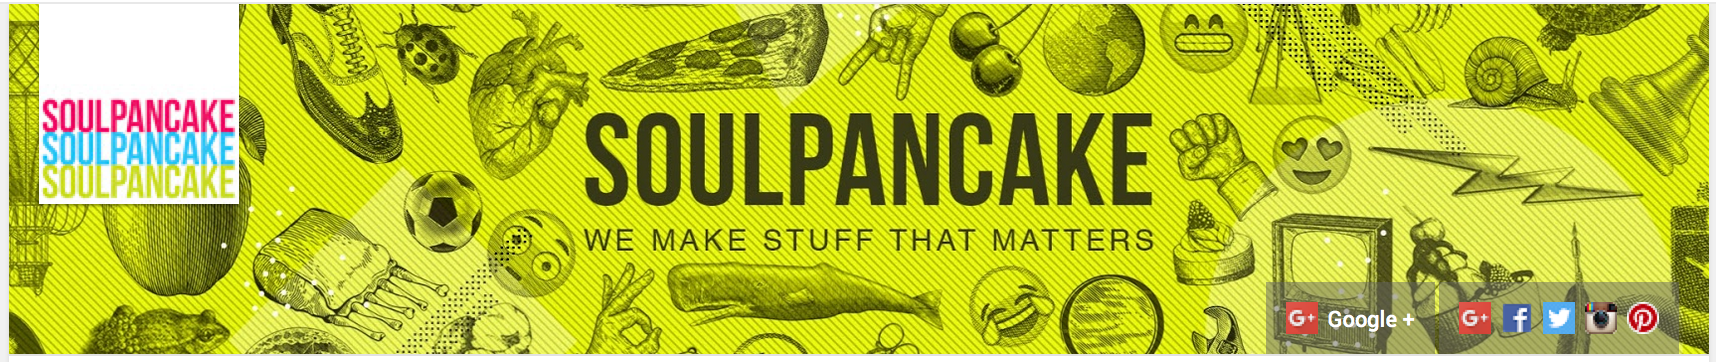 SoulPancake YouTube Banner